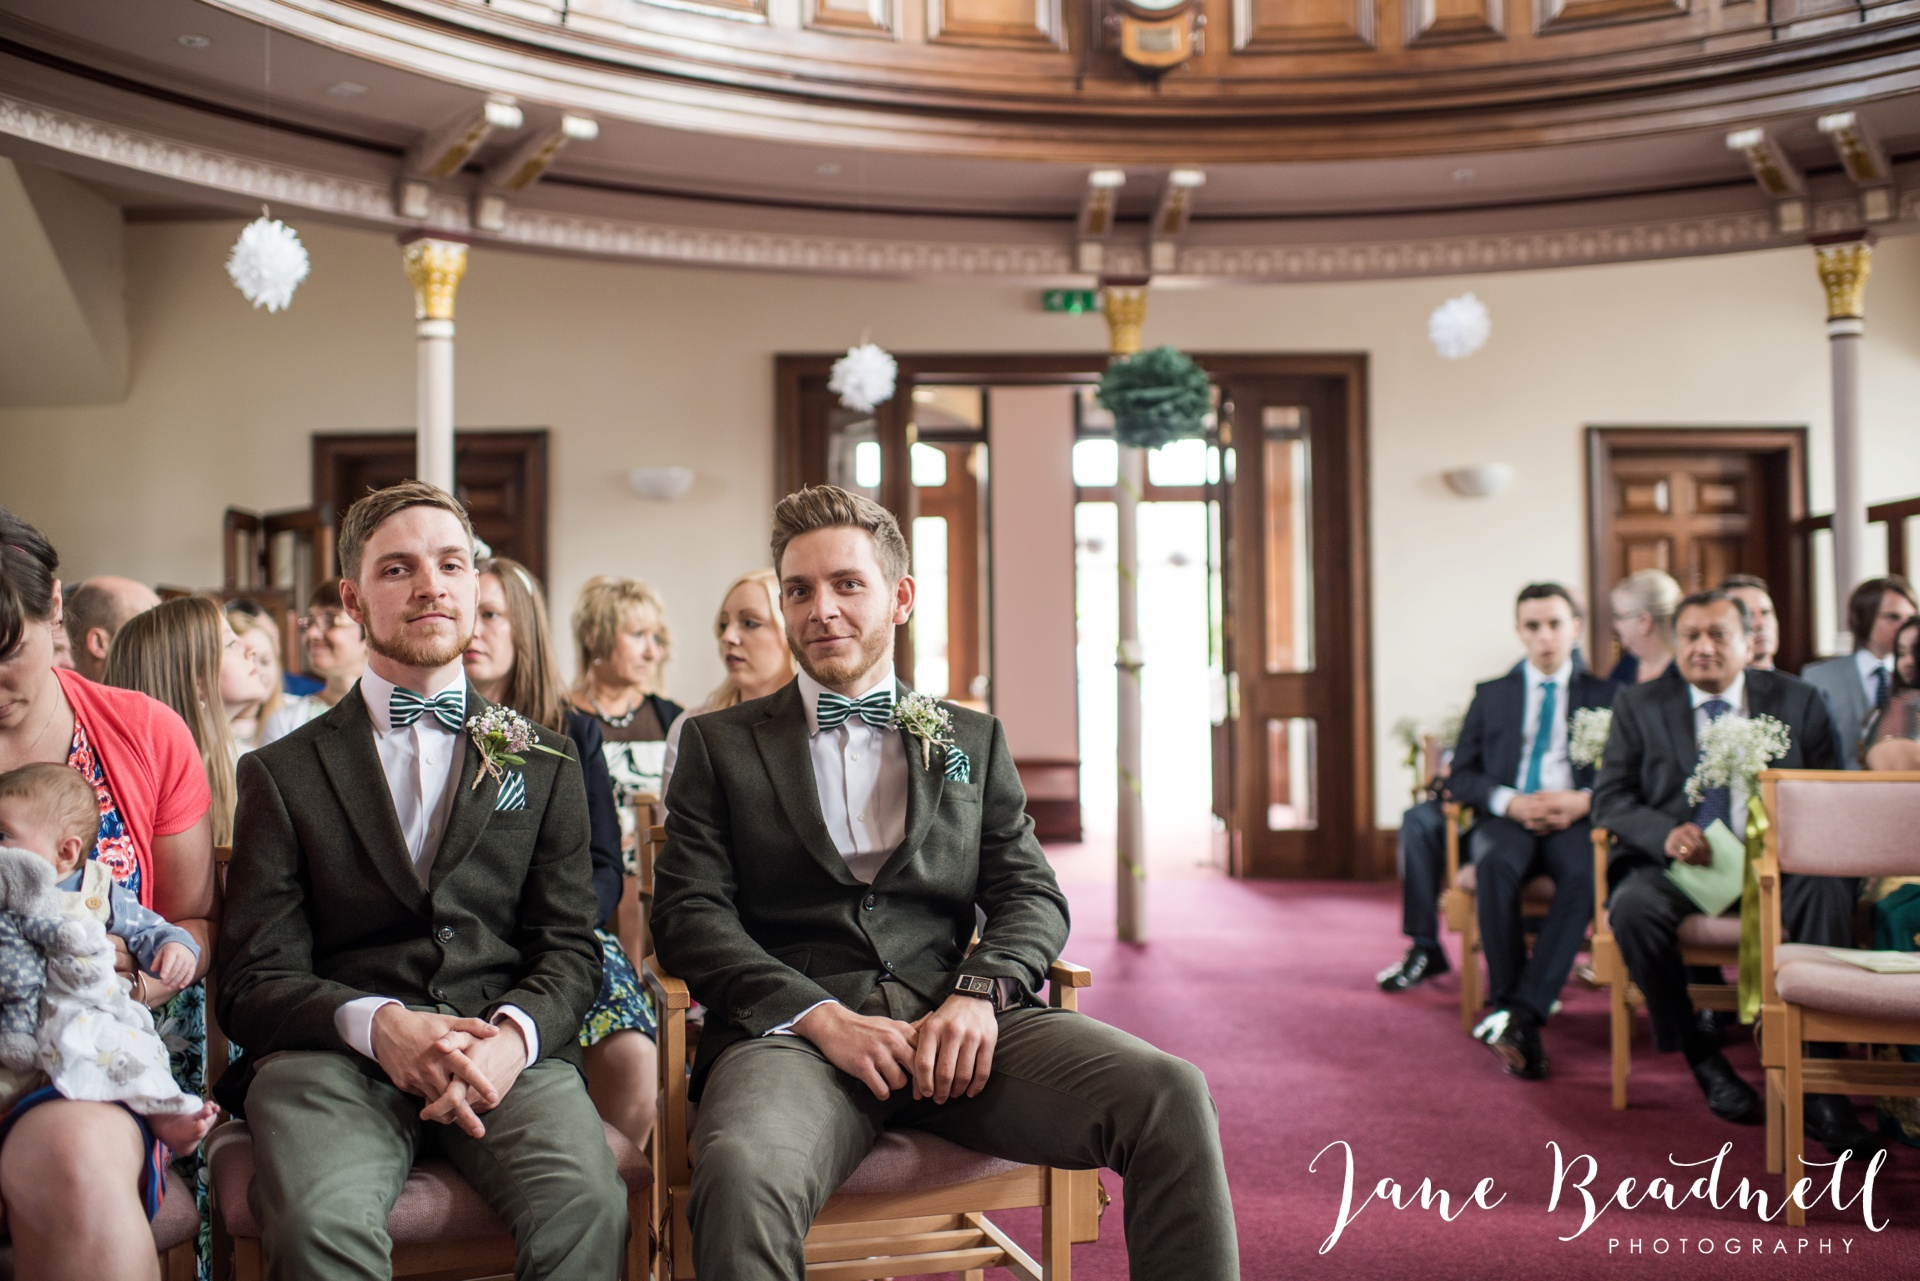 Jane Beadnell fine art wedding photographer The Old Deanery Ripon_0022